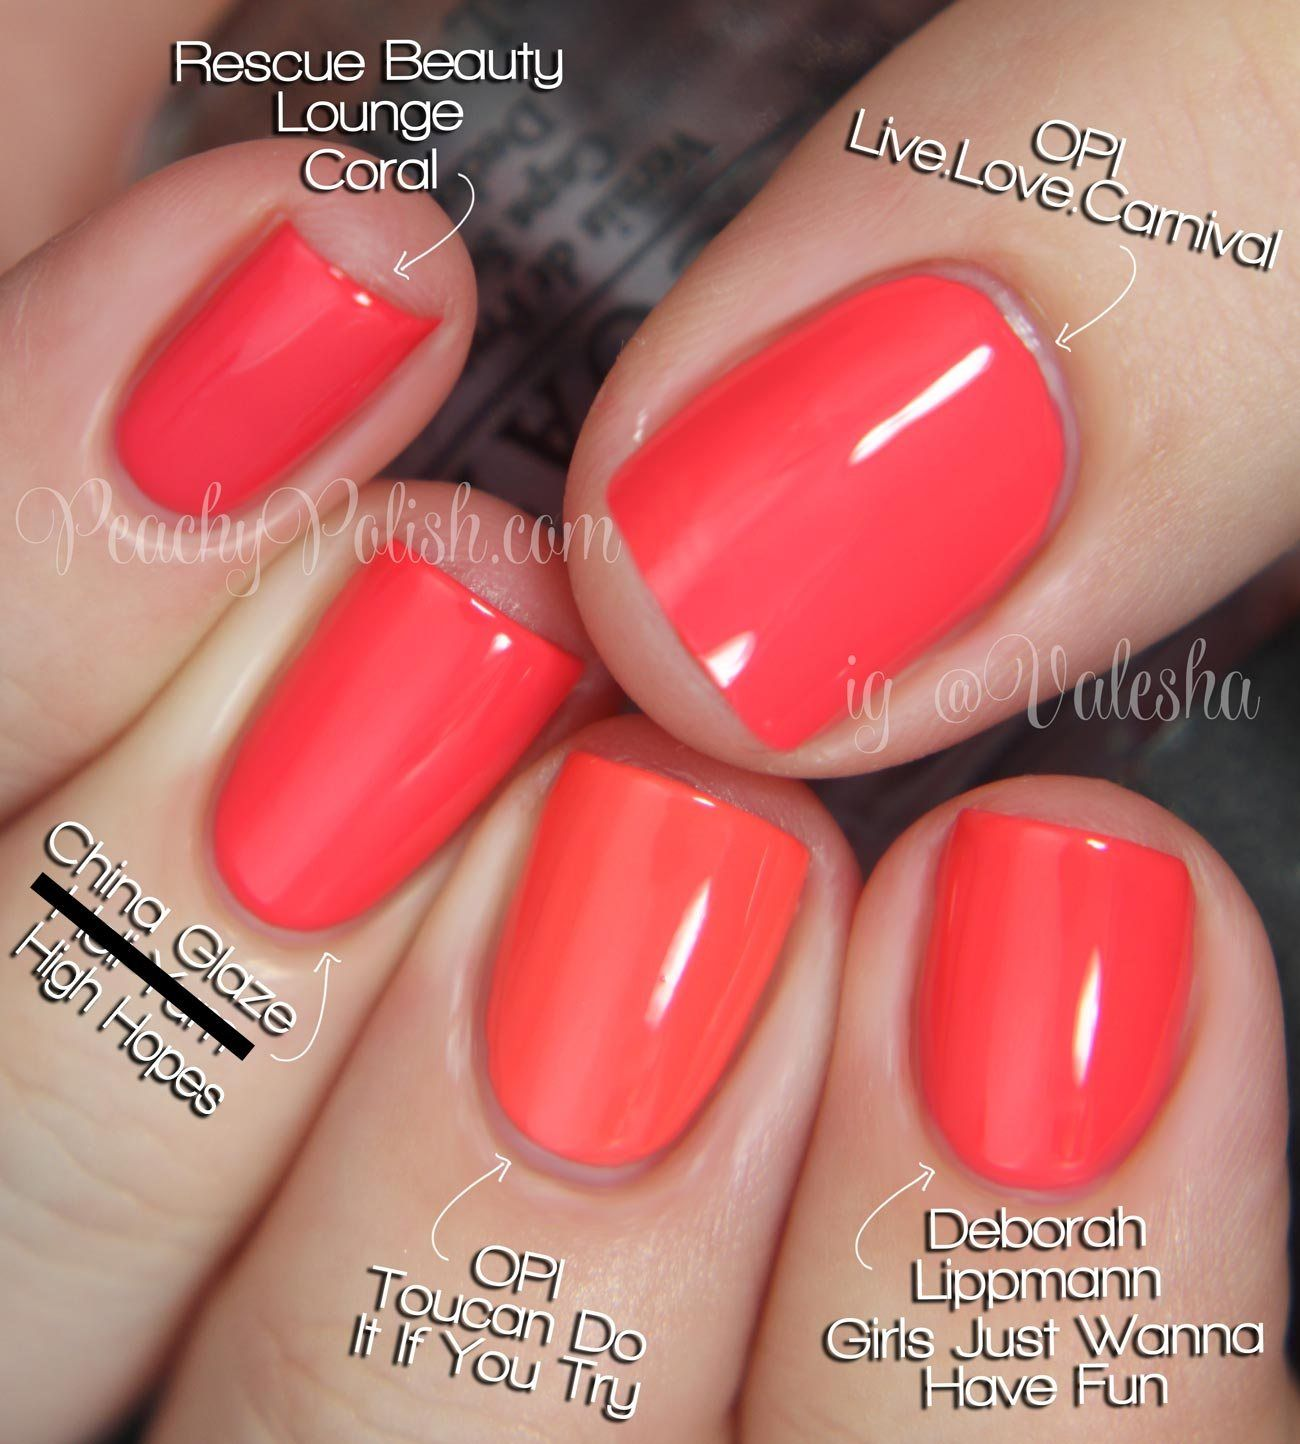 Opi Brazil Collection Comparisons With Images Nail Polish Opi Nail Polish Colors Opi Gel Nails